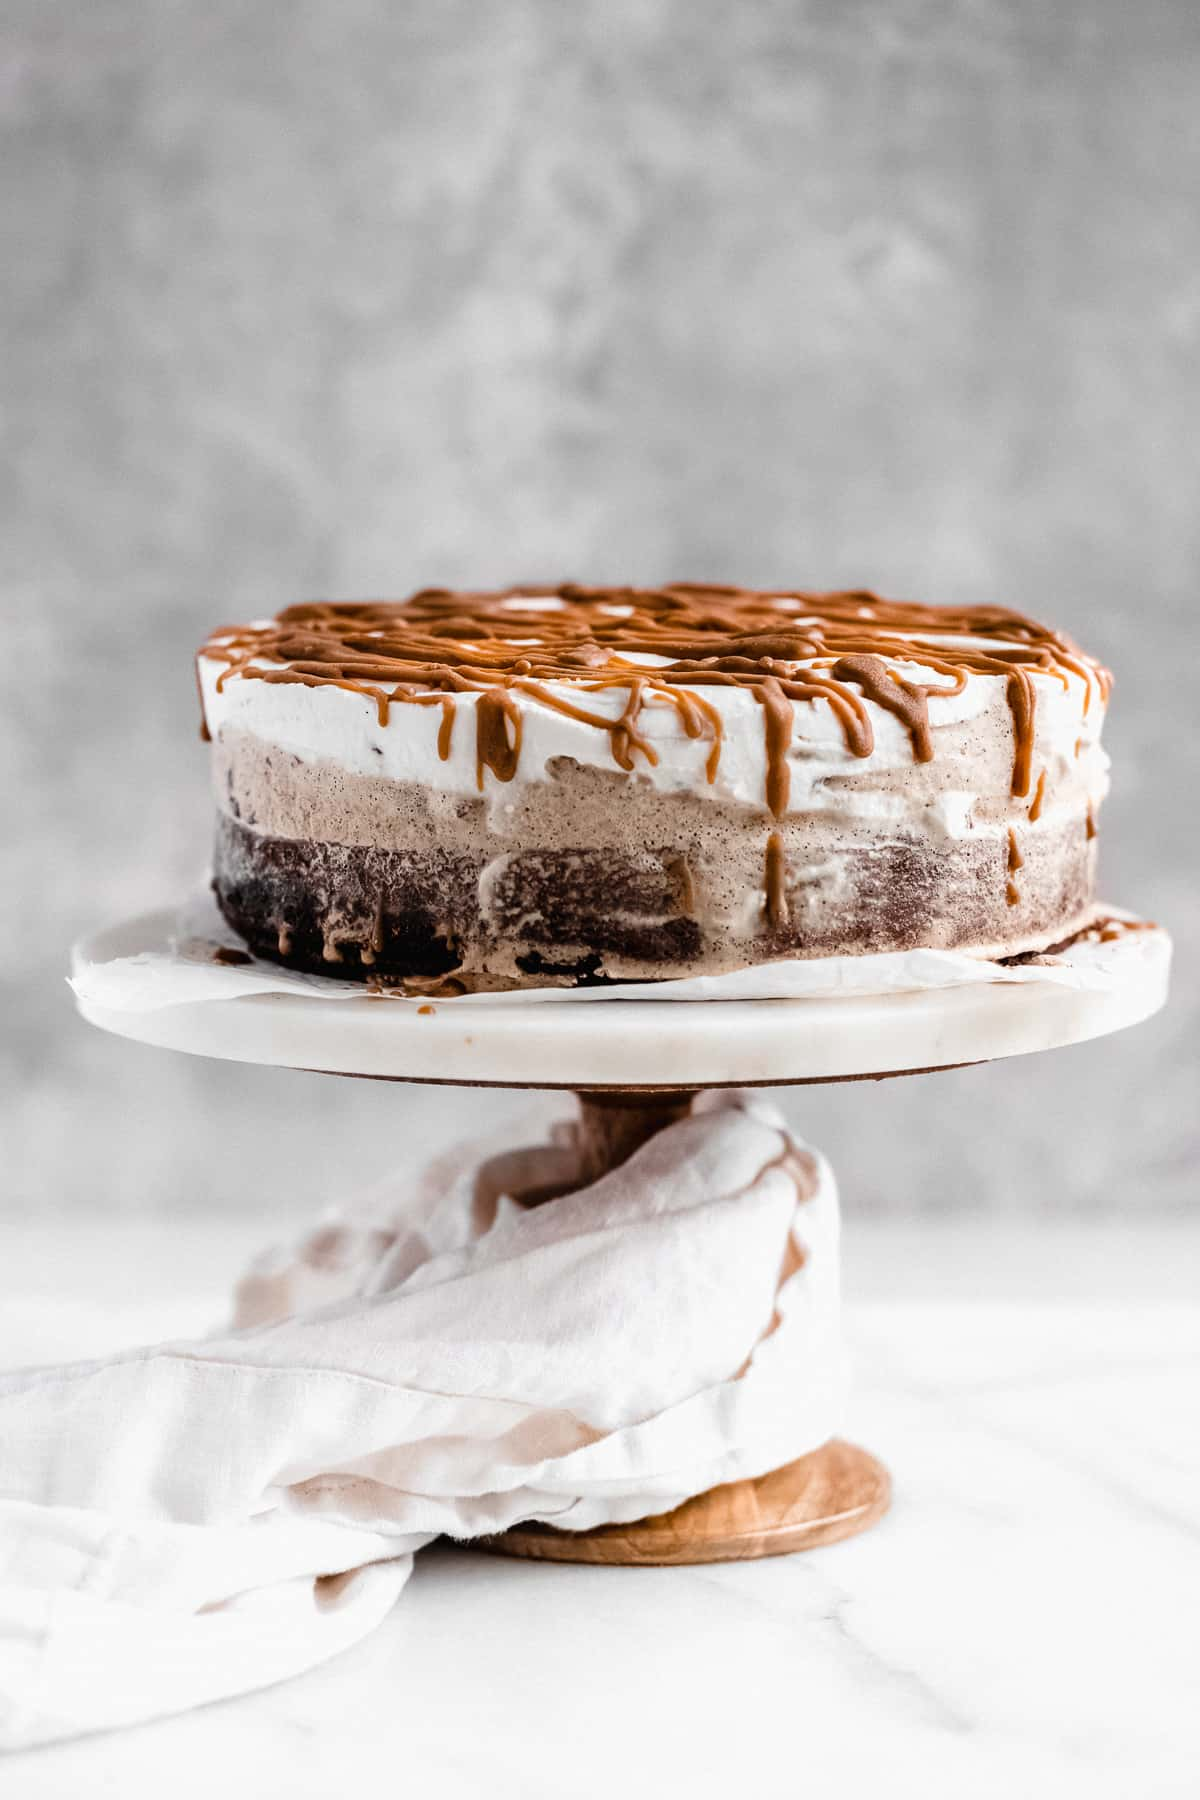 Side view image of the completed Chocolate Espresso Gluten-free Ice Cream Cake sitting on a white marble cake plate with a white linen cloth draped around the base.